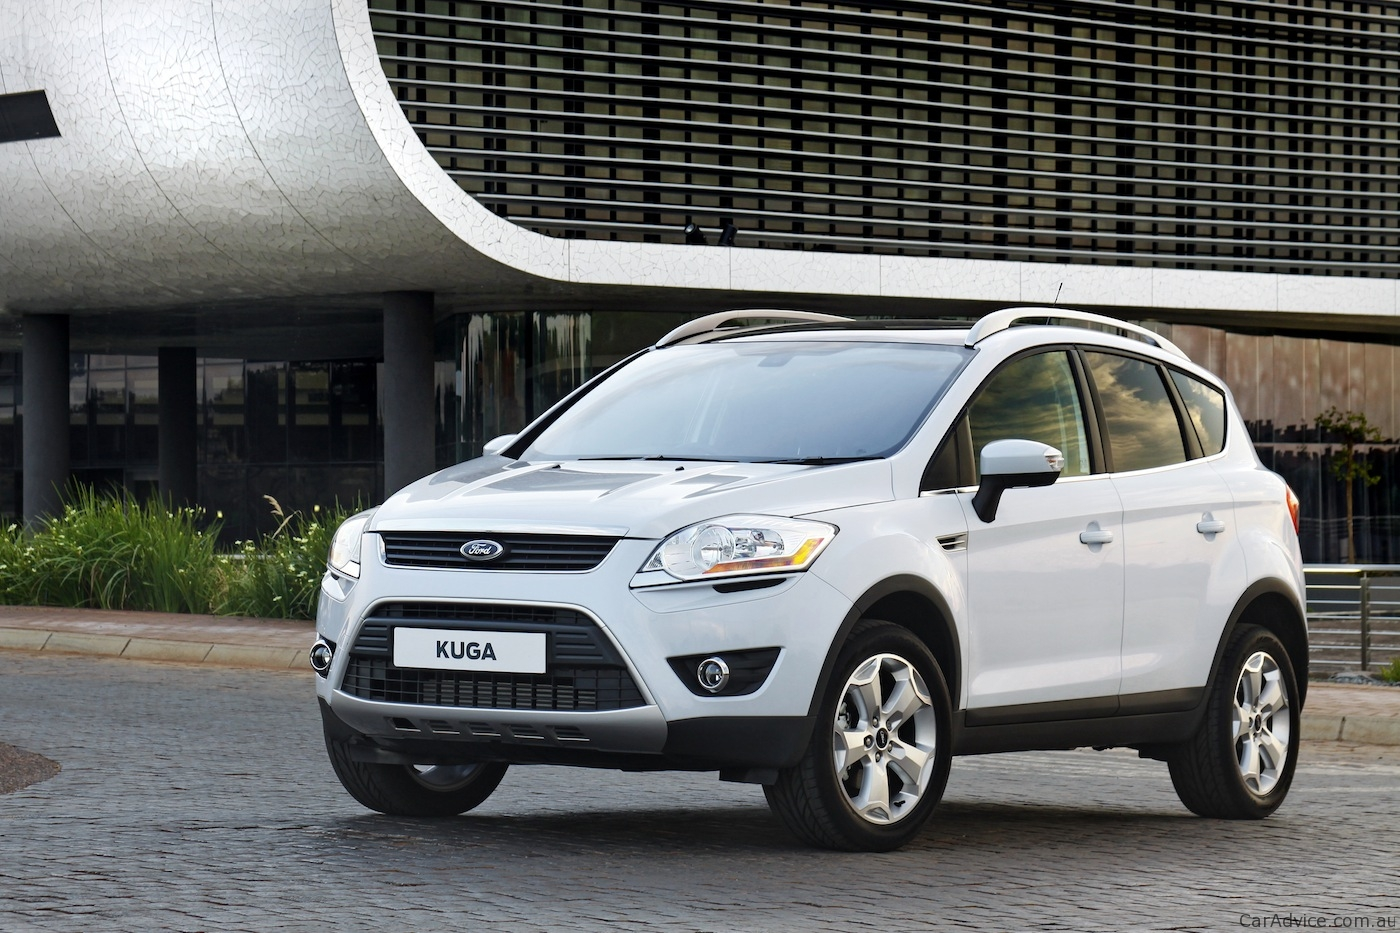 2012 ford kuga compact suv here in march photos 1 of 9. Black Bedroom Furniture Sets. Home Design Ideas